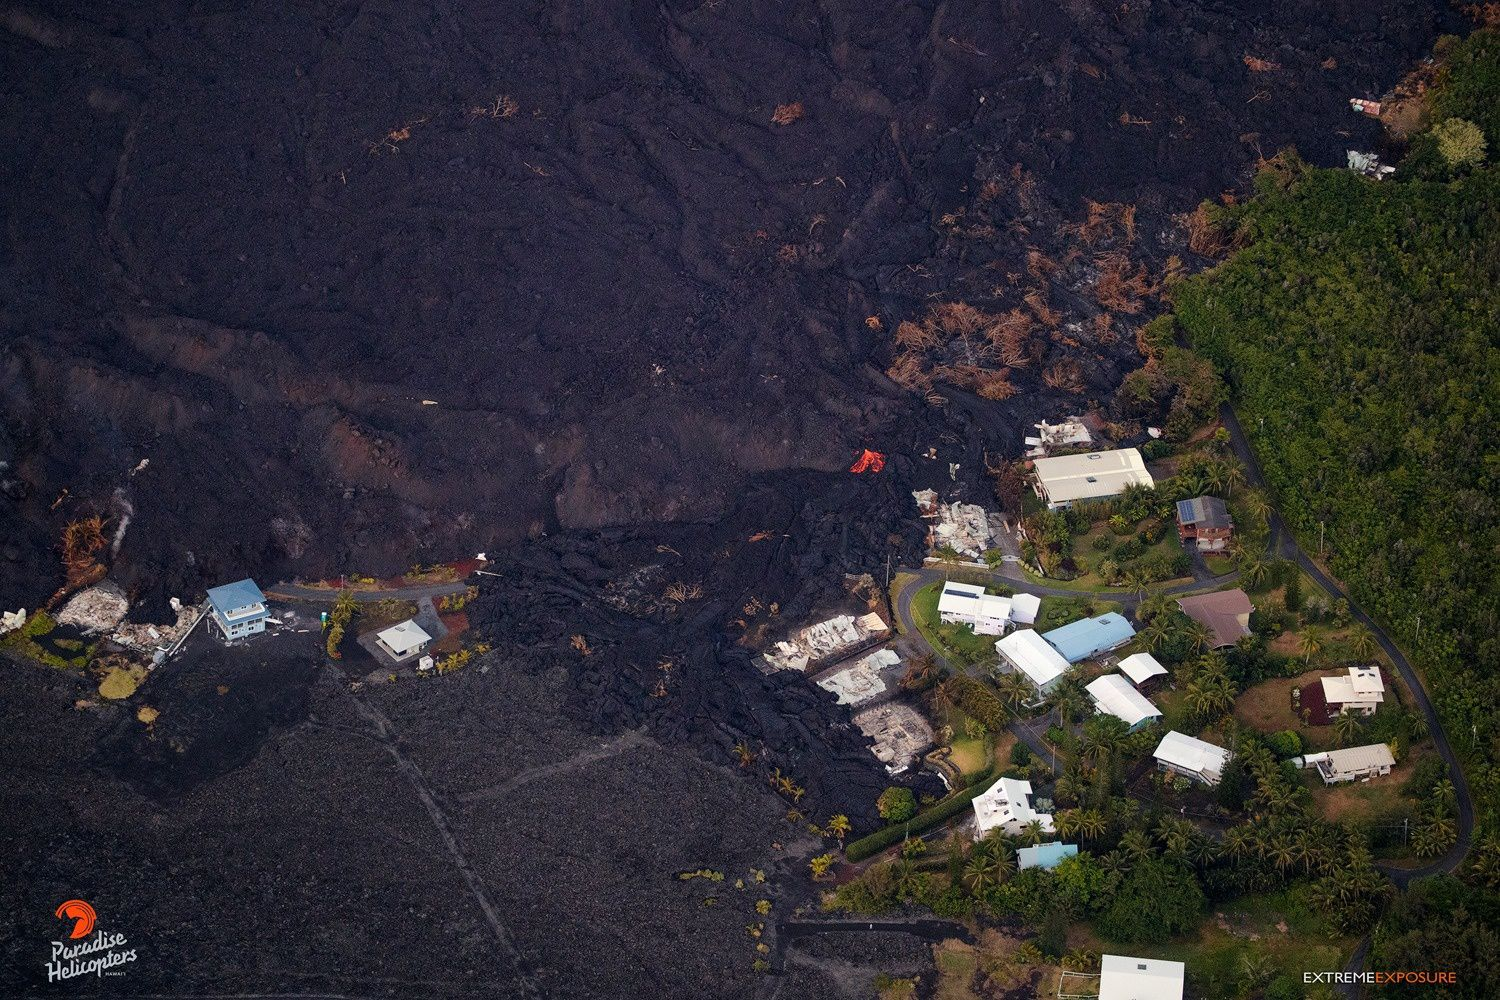 Kilauea East rift zone - lava threatens the last houses still intact north of the delta - photo 02.07.2018 / 05:45 Bruce Omori / Paradise helicopters